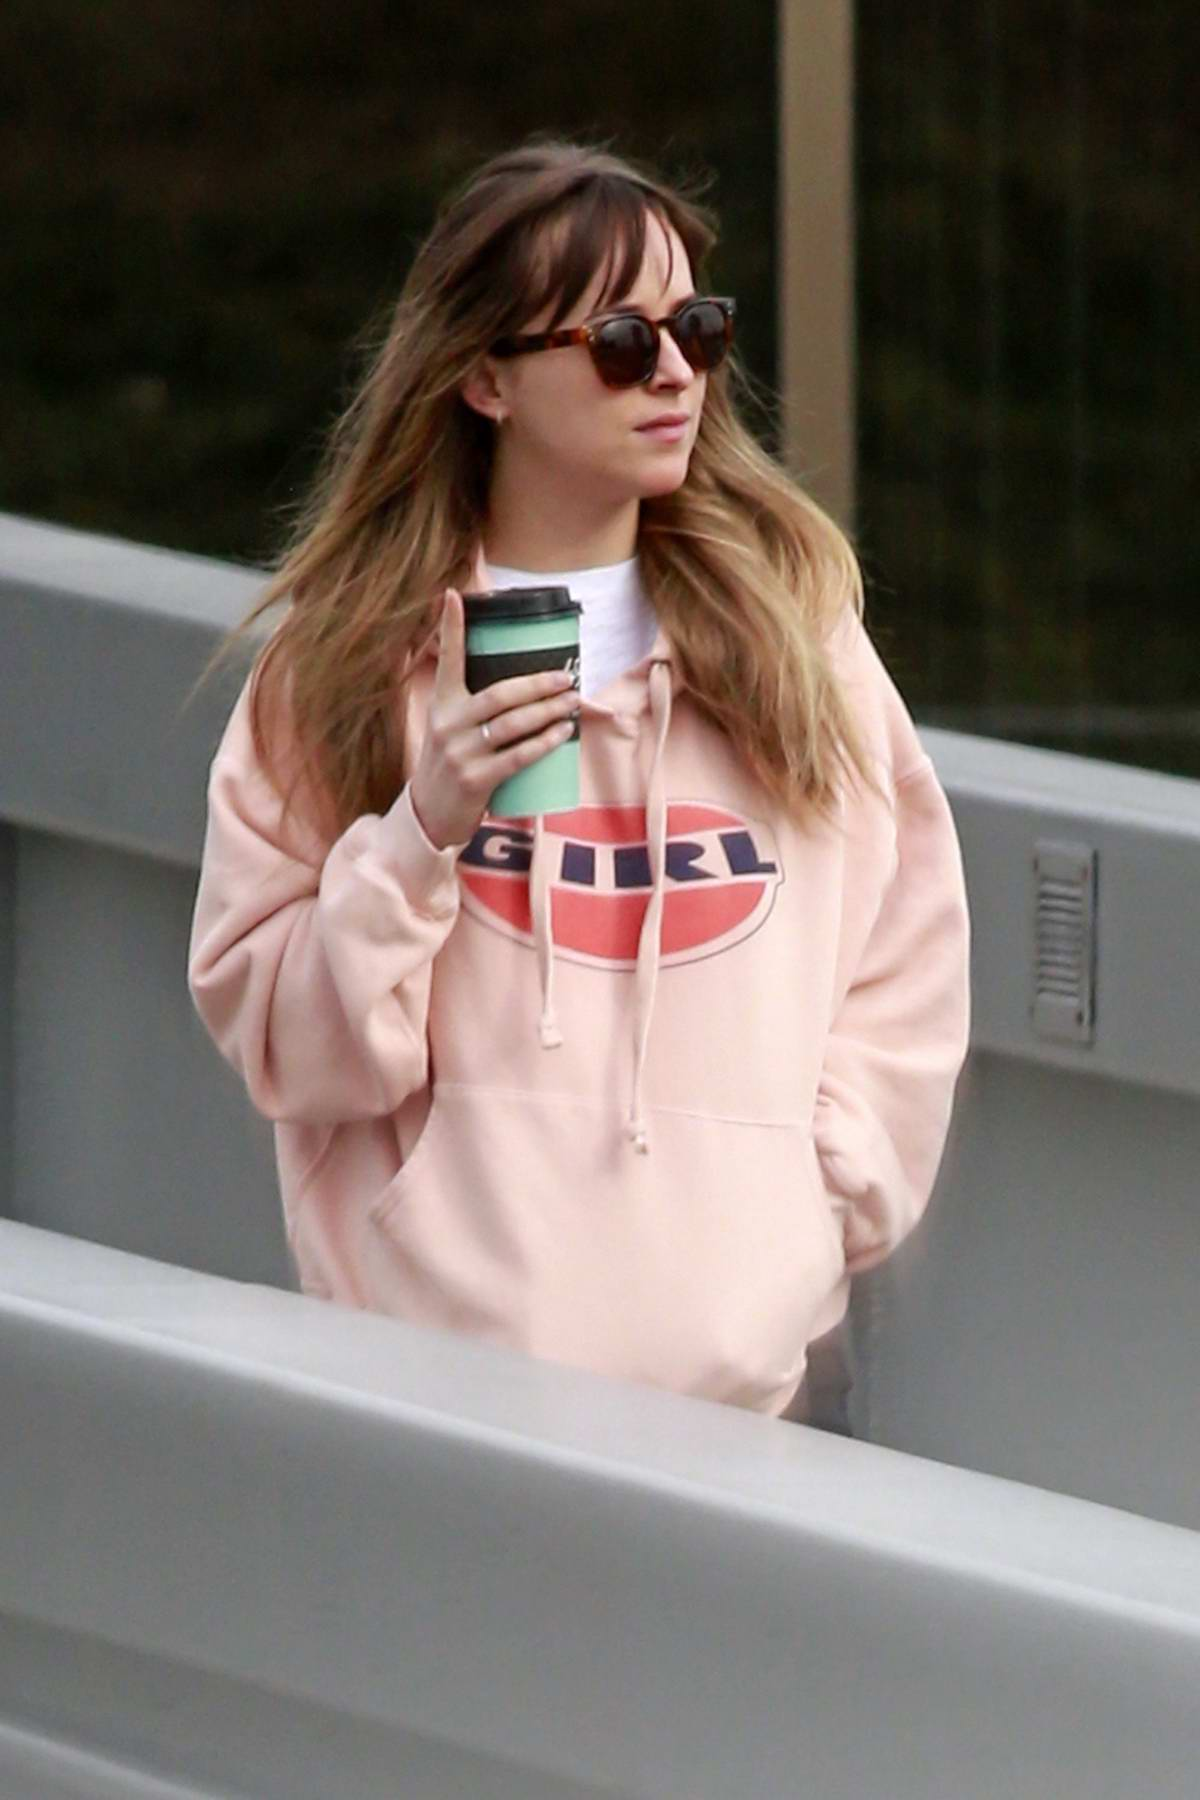 Dakota Johnson was spotted leaving the studio after a brief visit on a day off from work in Burnaby, British Columbia, Canada